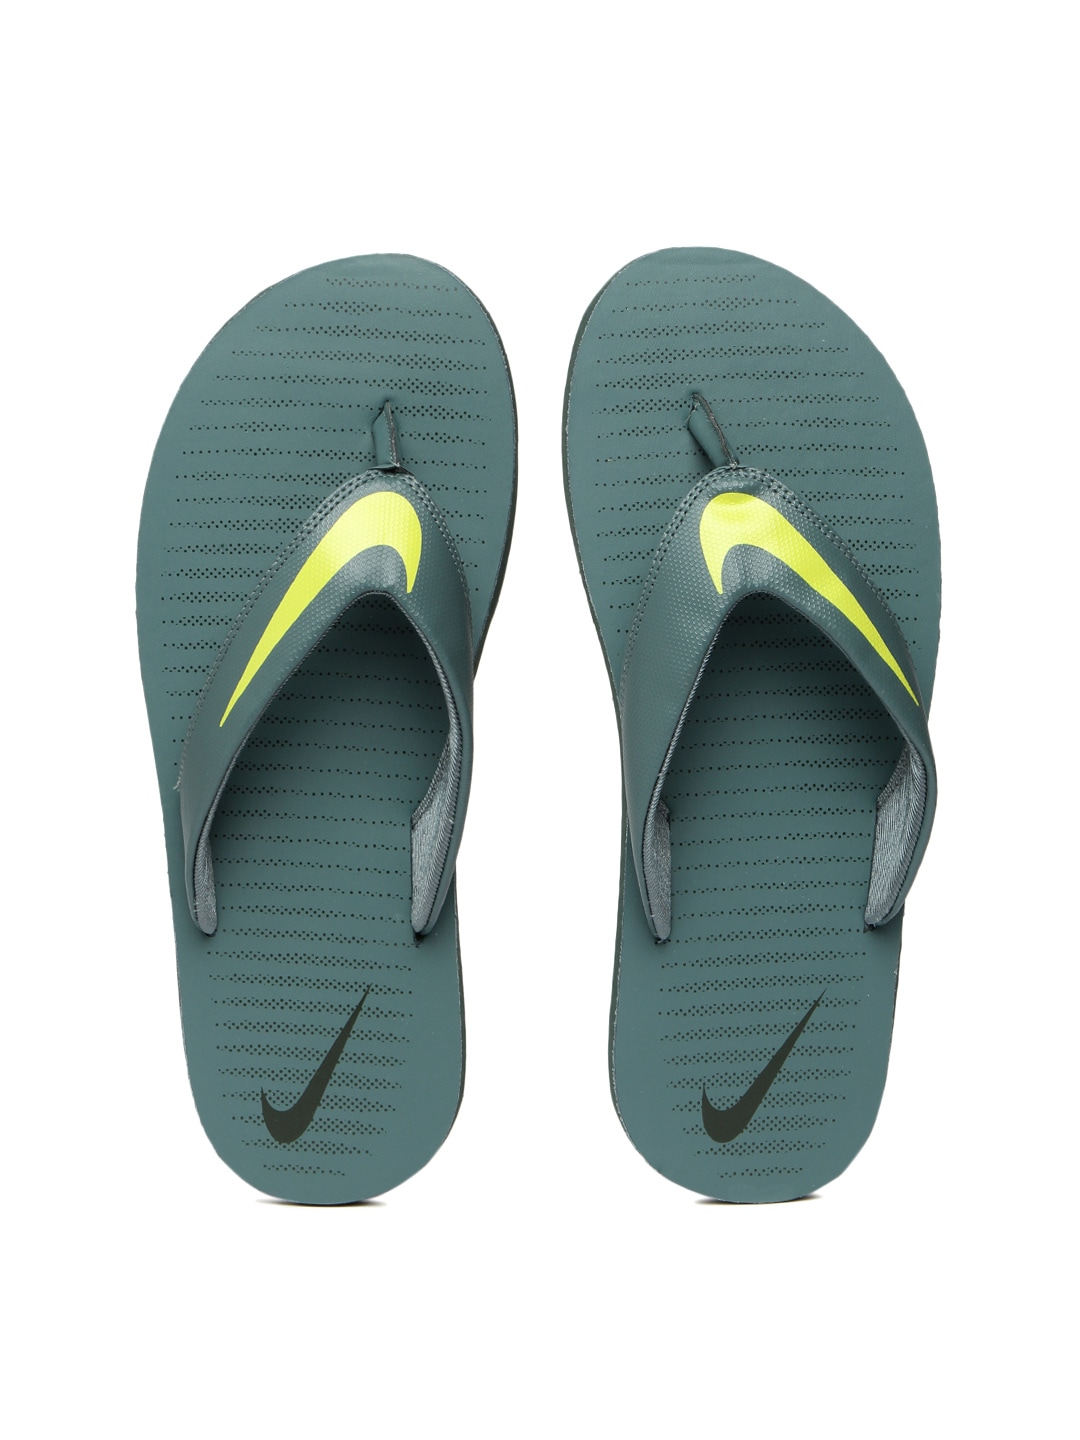 9049a978c Nike 833808-300 Men Green Chroma Thong 5 Flip Flops - Best Price ...